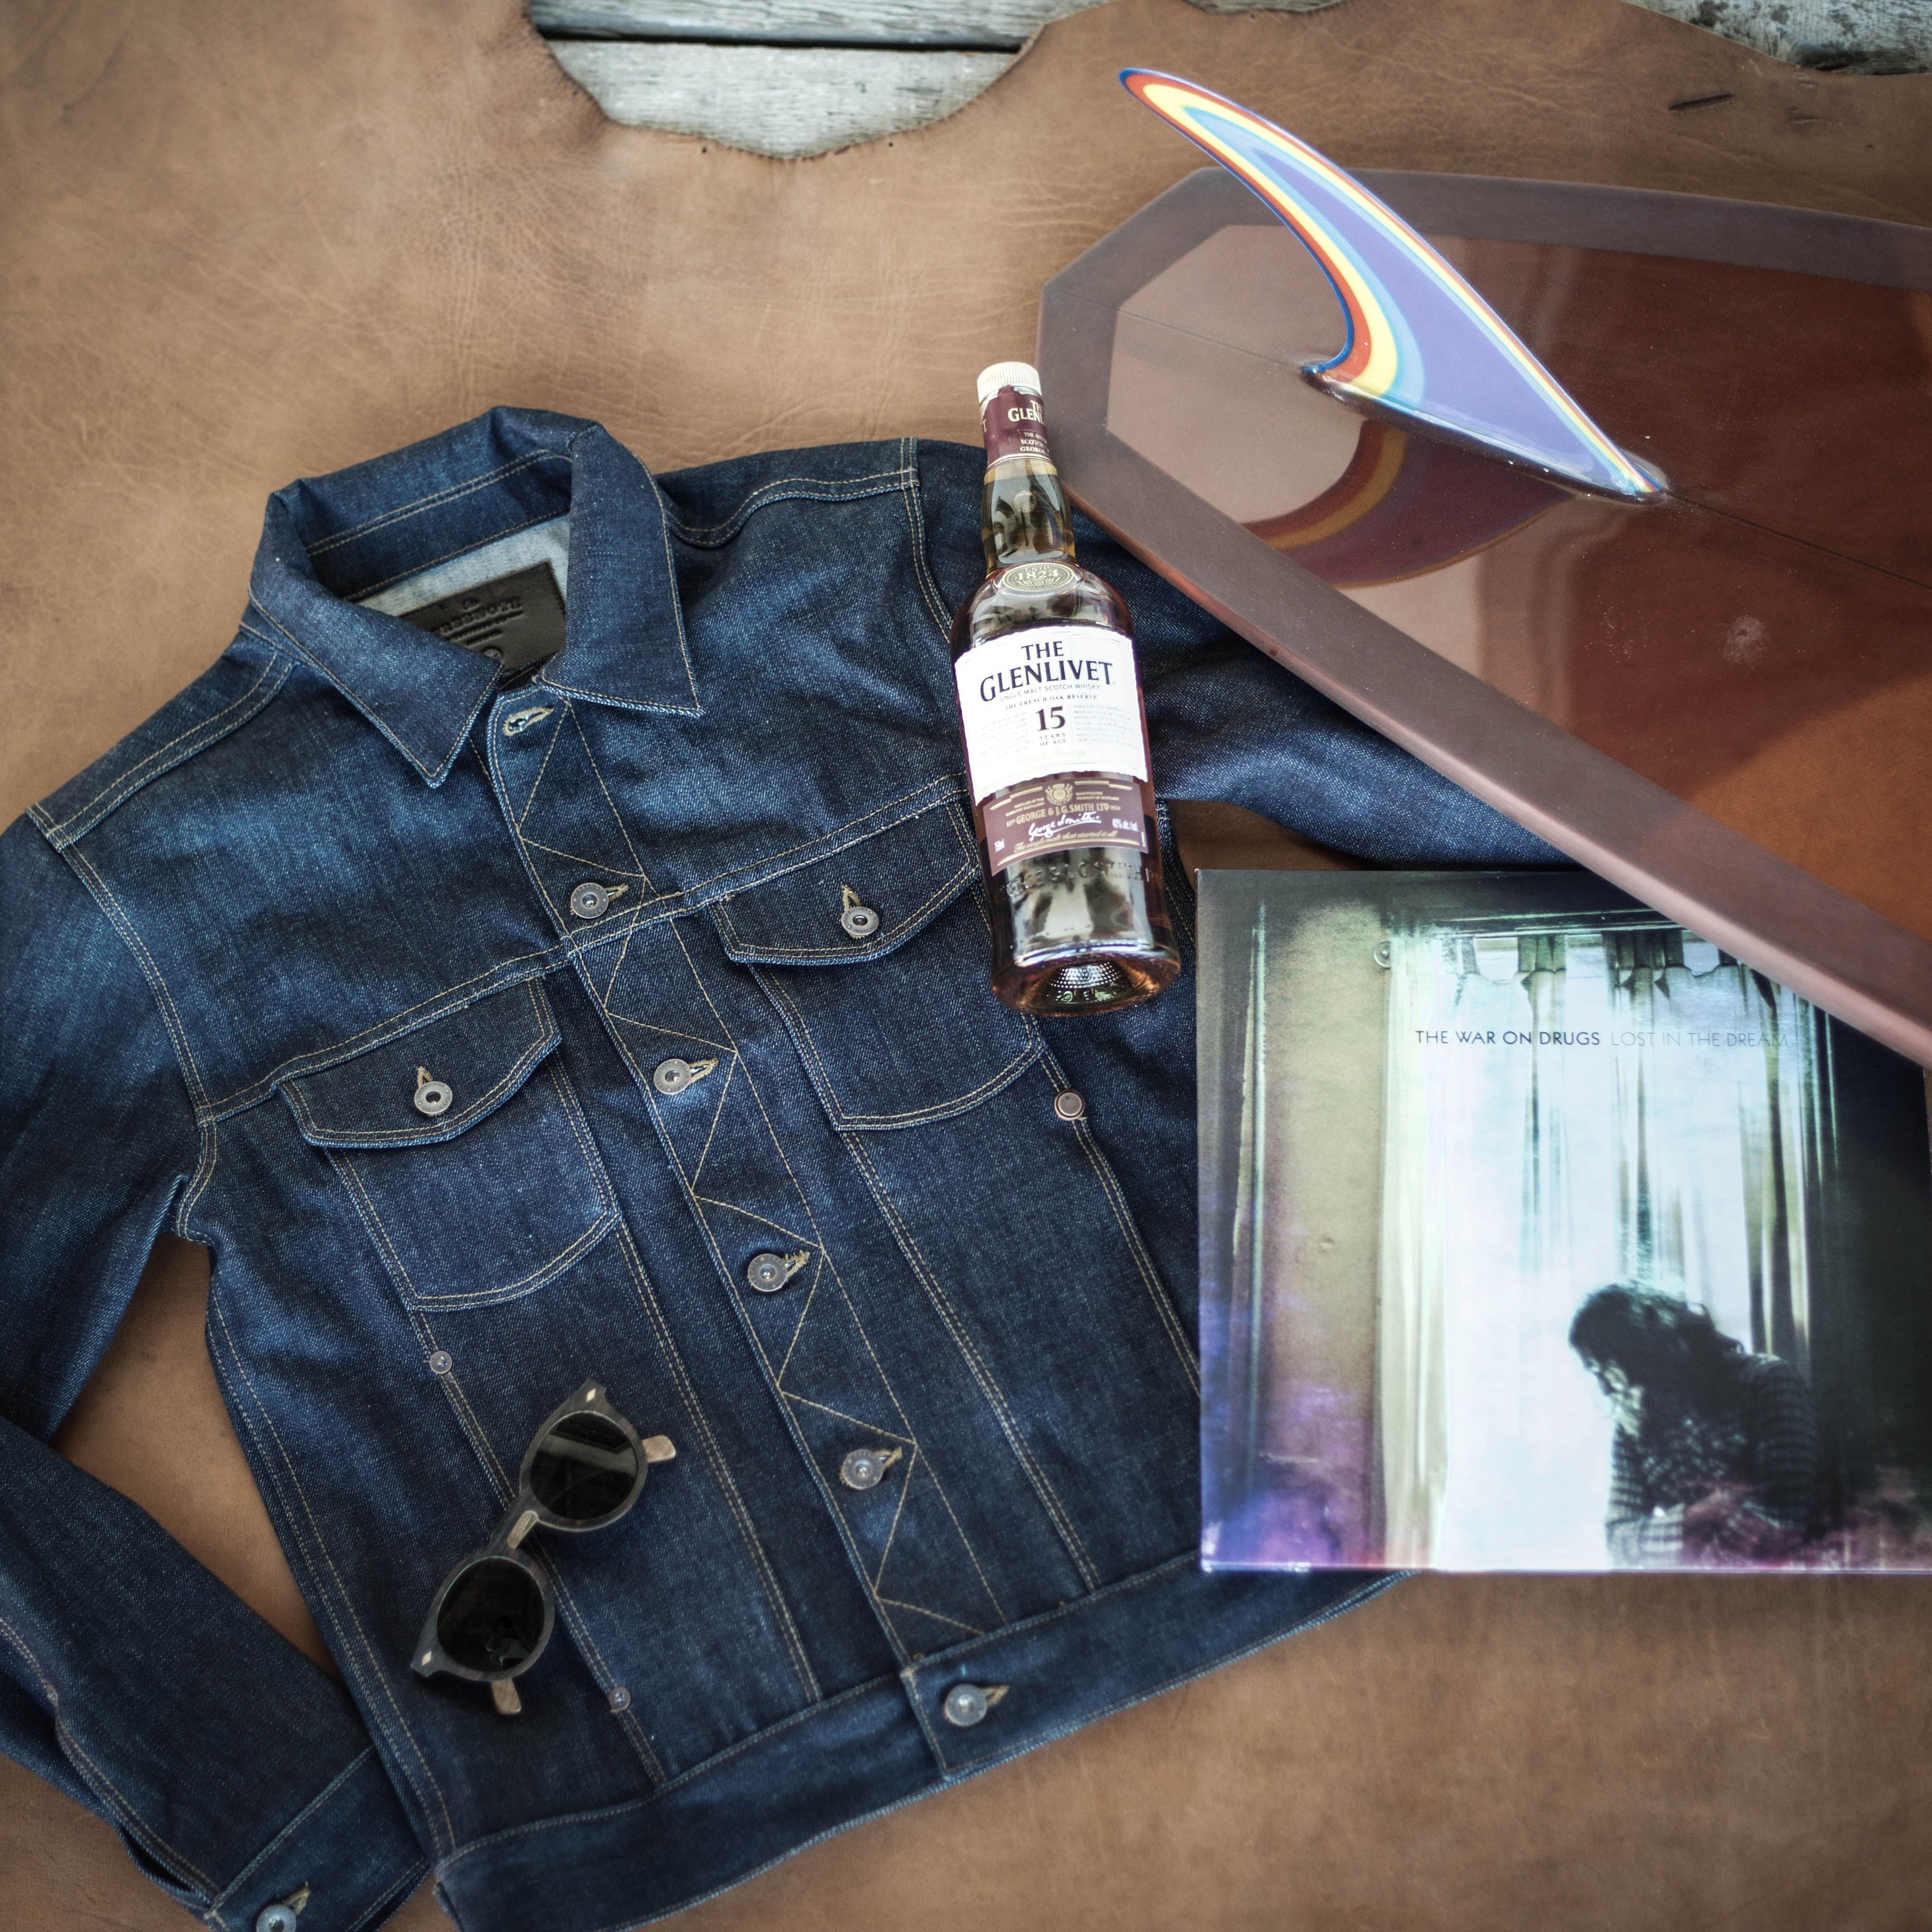 THINGS WE LOVE: Freenote Classic Denim Jacket, Glenlivet Single Malt Scotch Whisky, Shaper Supply board, Shwood Eyewear shades & The War On Drugs vinyl  #freenotecloth #surf #mensfashion #denimjacket #vinyl #whiskey